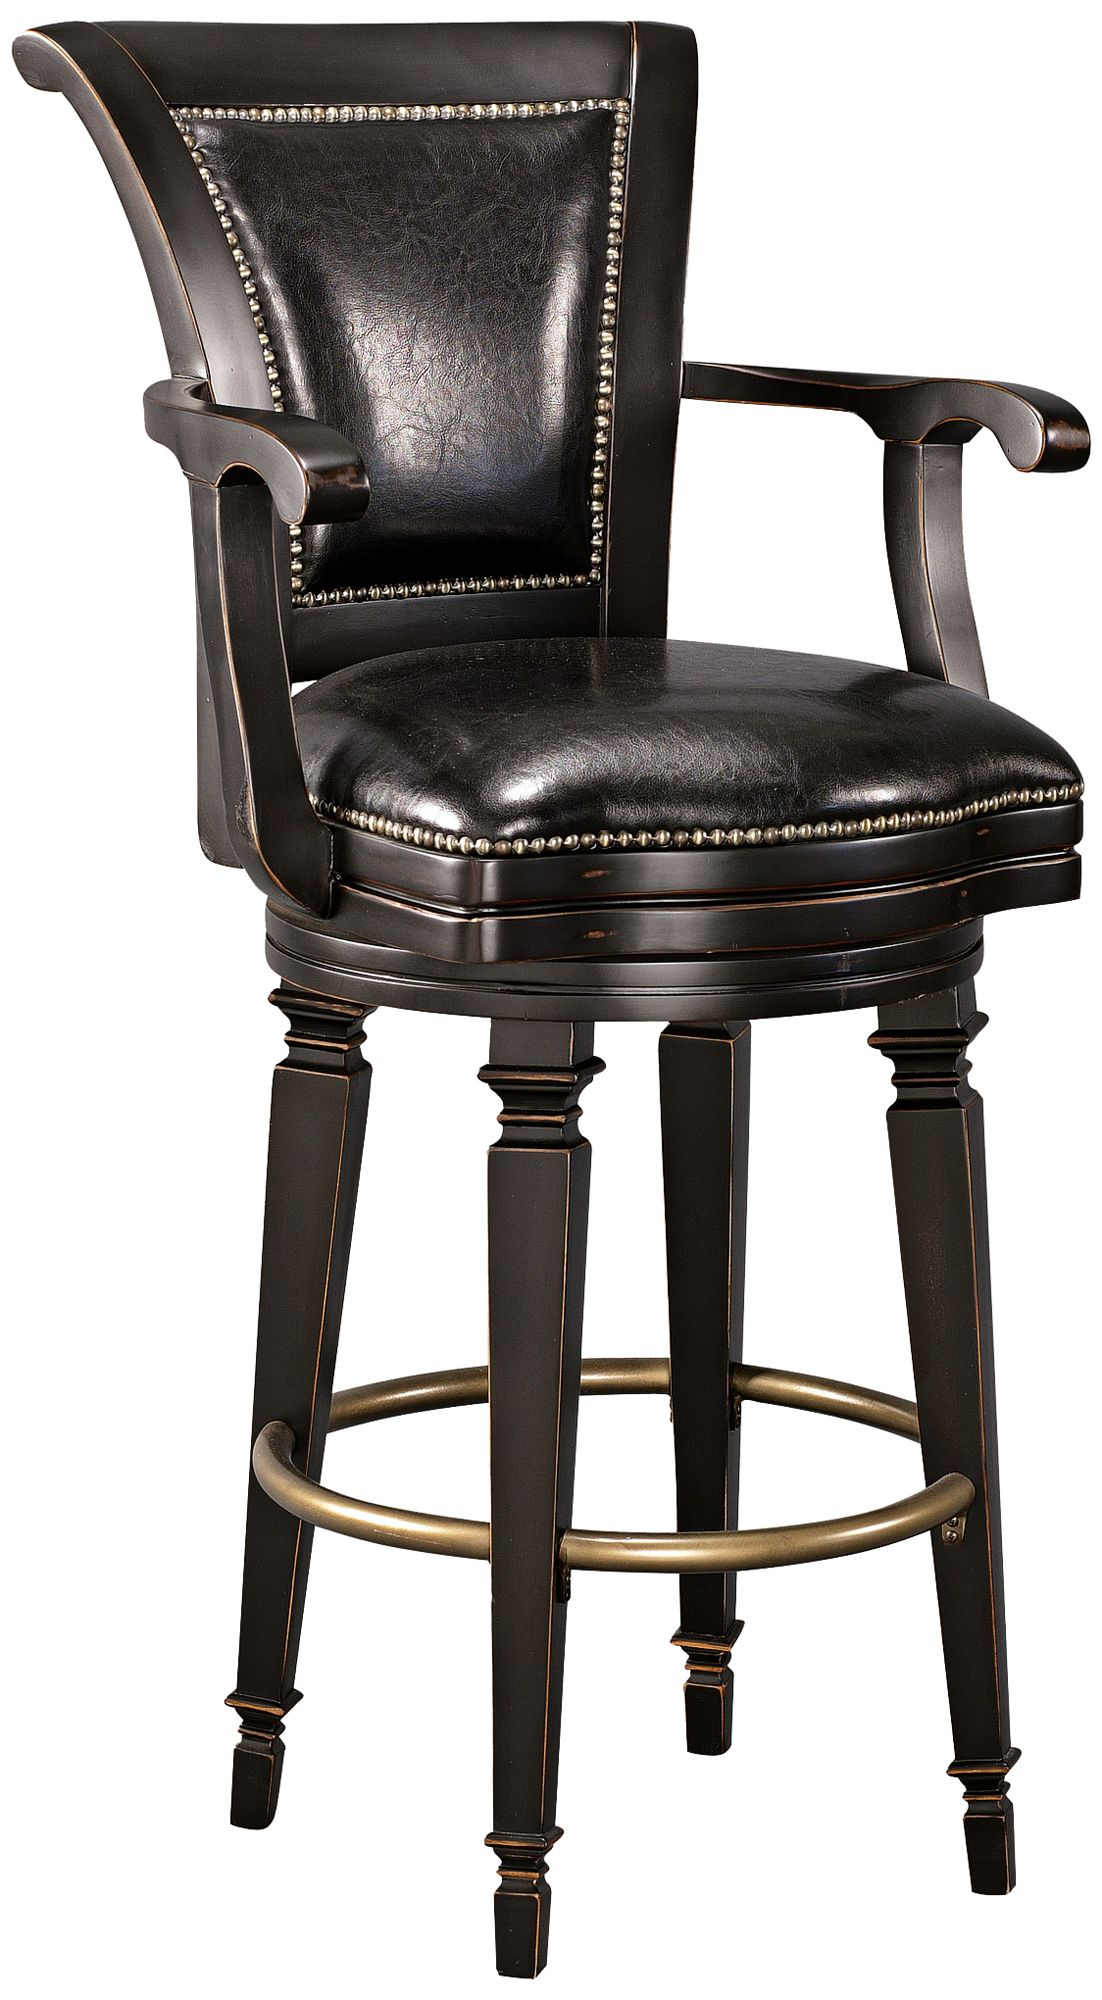 Northport 30 1/2  Black Faux Leather Swivel Barstool  sc 1 st  L&s Plus : white faux leather stool - islam-shia.org